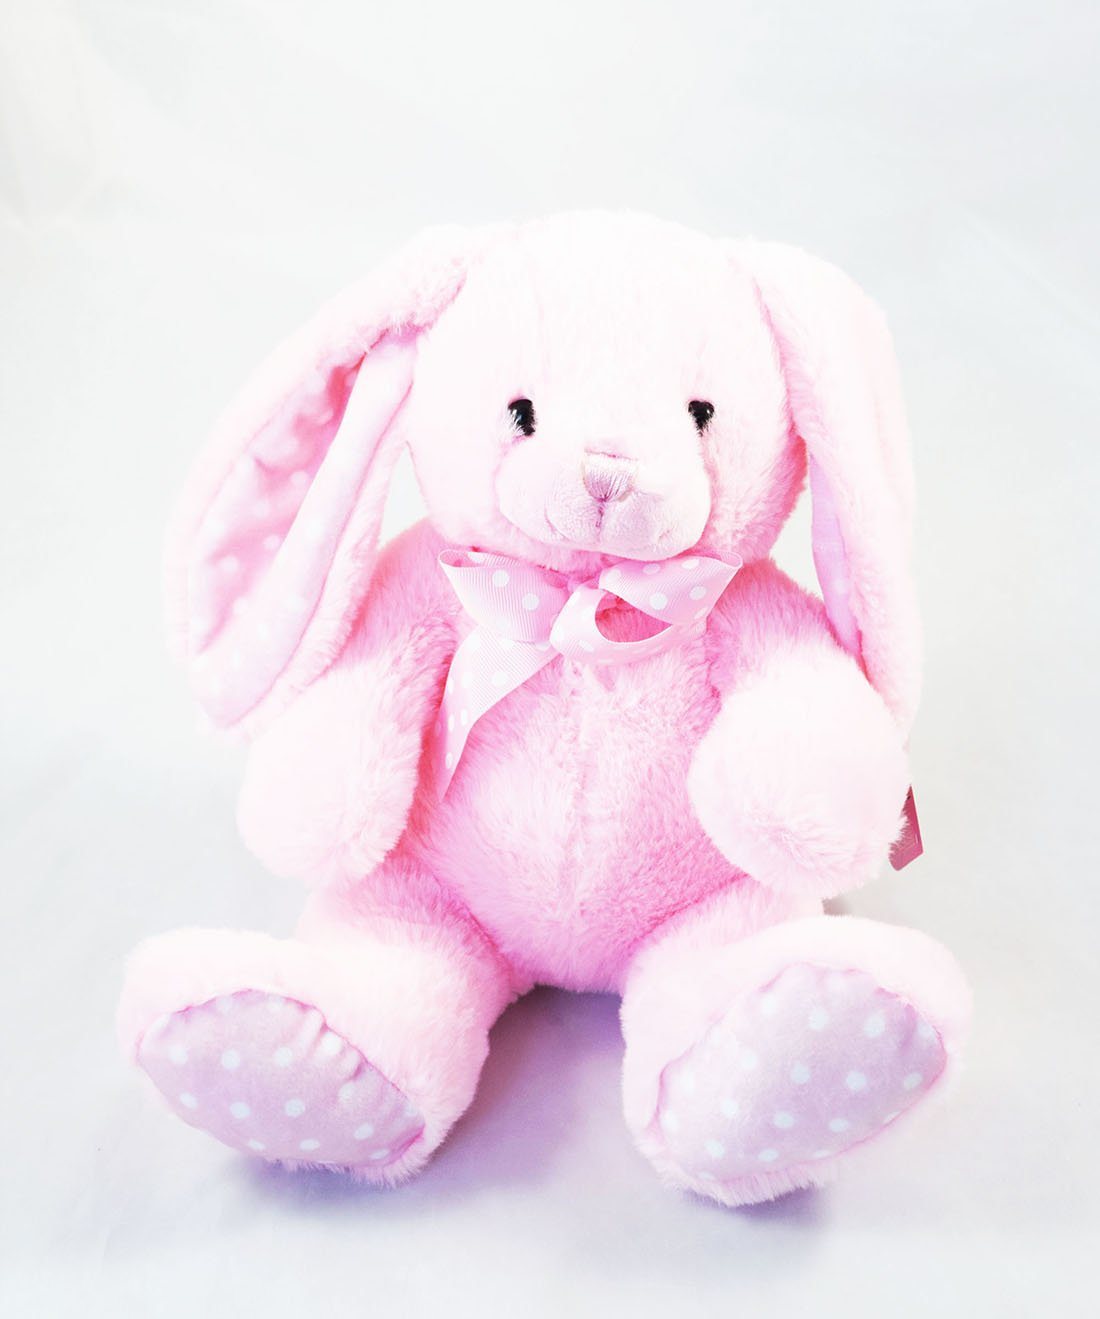 33c91f88af5 Pink Rabbit Bunny Baby Shower Newborn Cute Cuddly Soft Plush Toy Birthday  Gift  Amazon.co.uk  Toys   Games